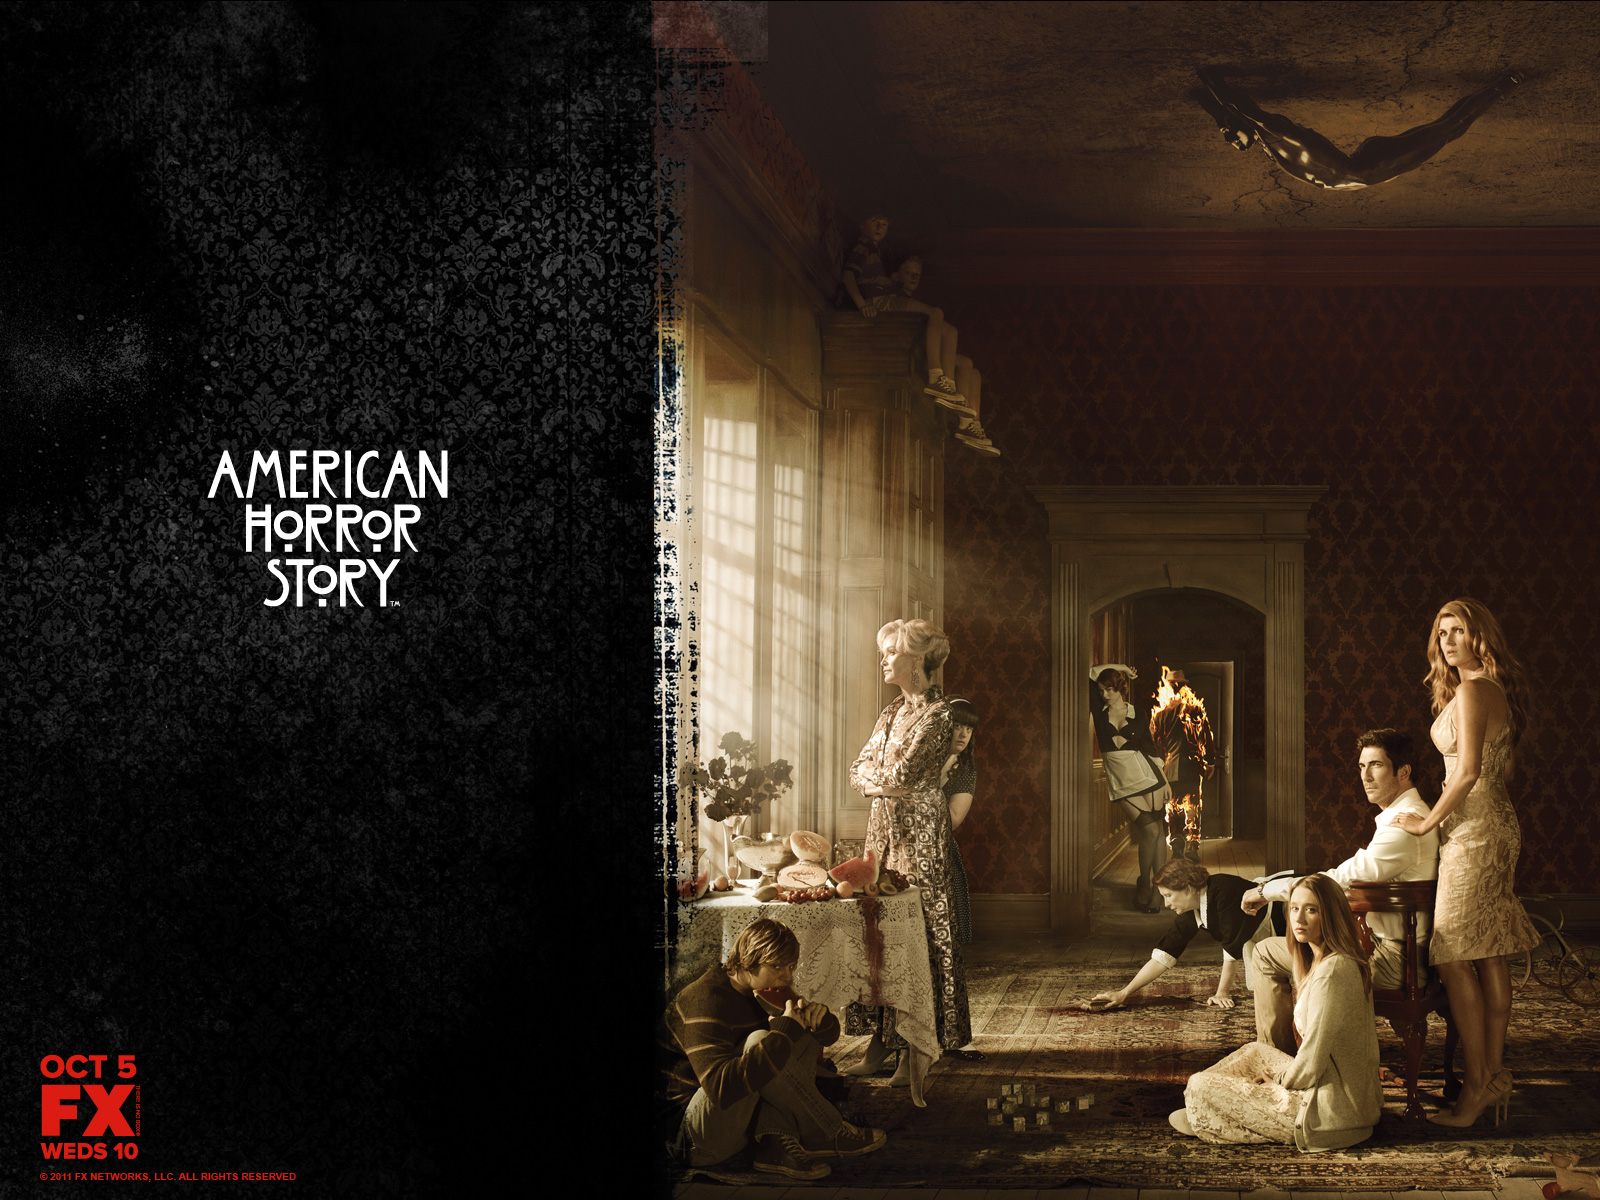 American Horror Story Wallpapers - WallpaperSafari